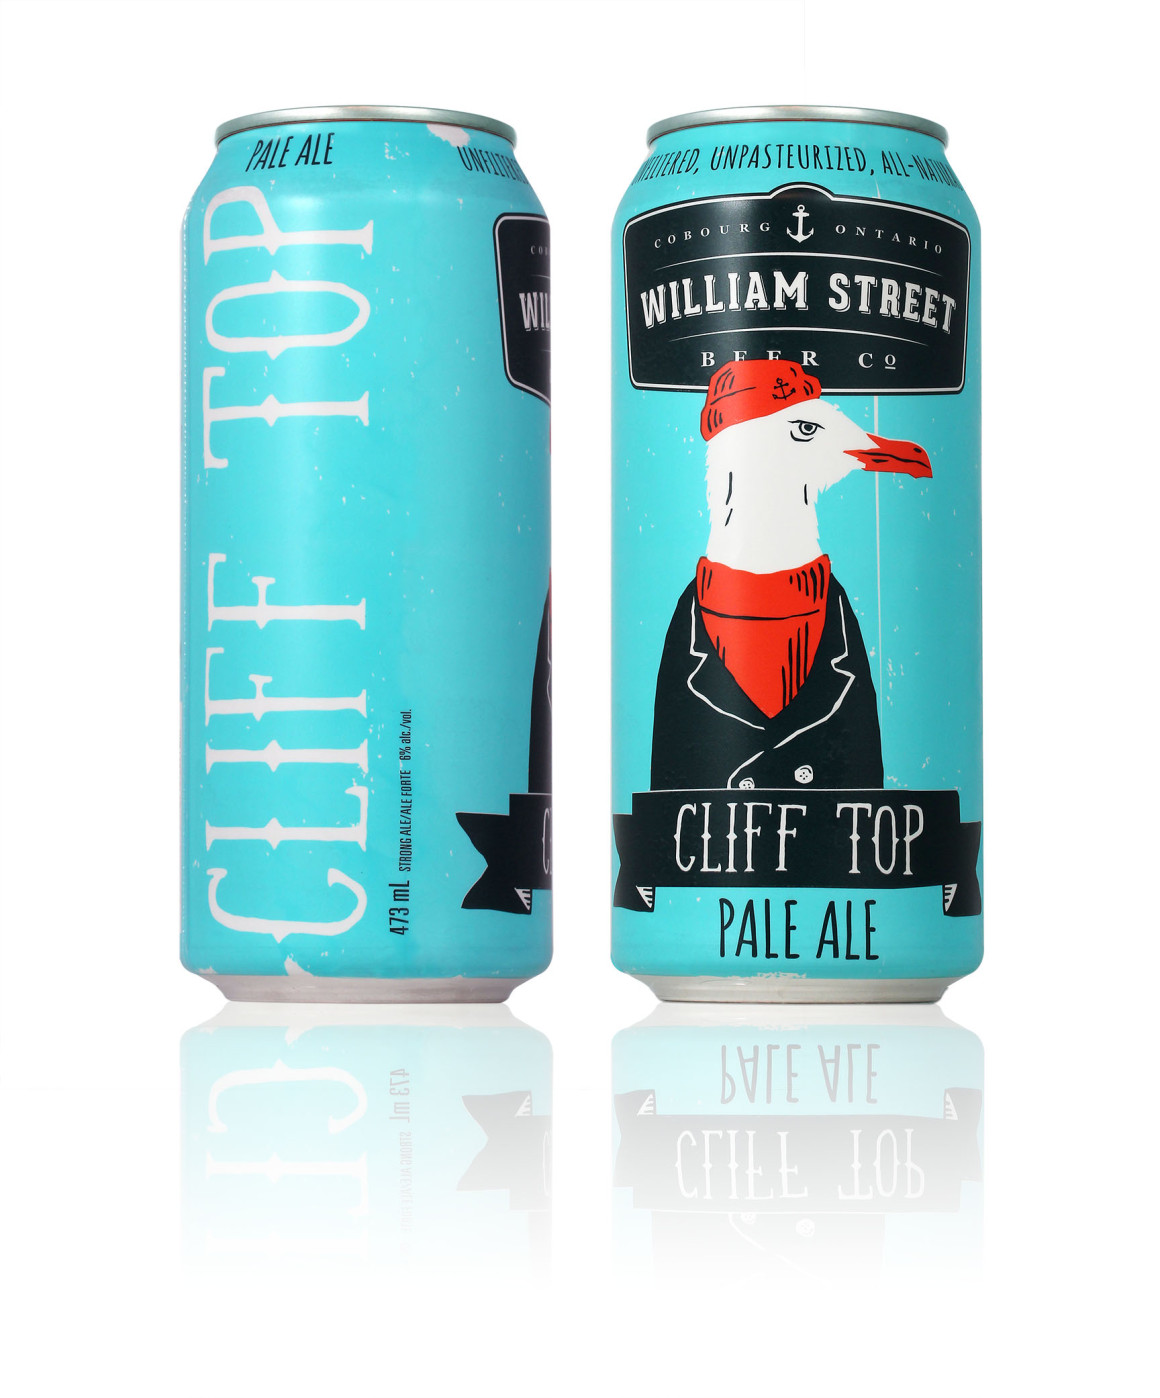 Cliff Top Pale Ale – William Street Beer Co. – Luke Despatie & The Design Firm